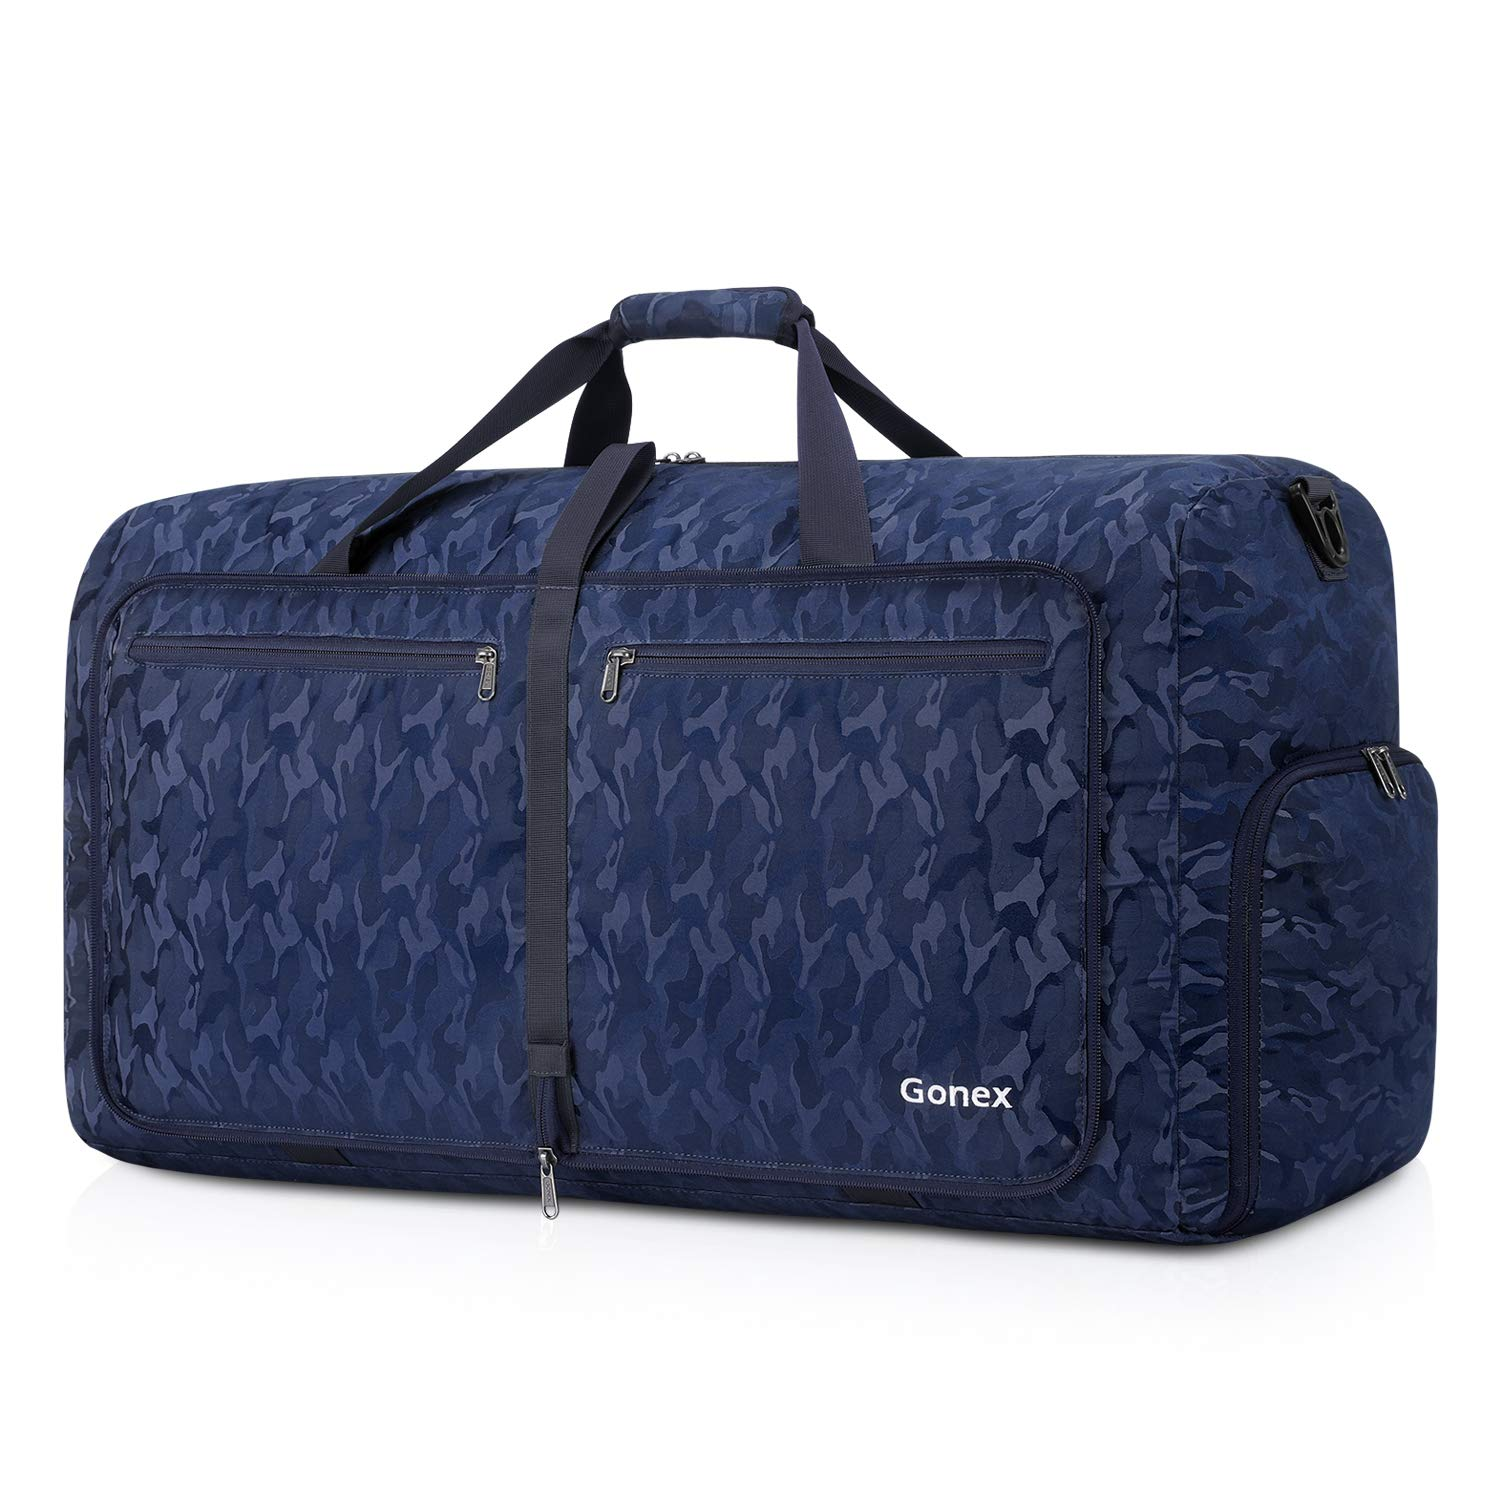 8b096e62c132 Amazon.com  Gonex Foldable Travel Duffel 80L